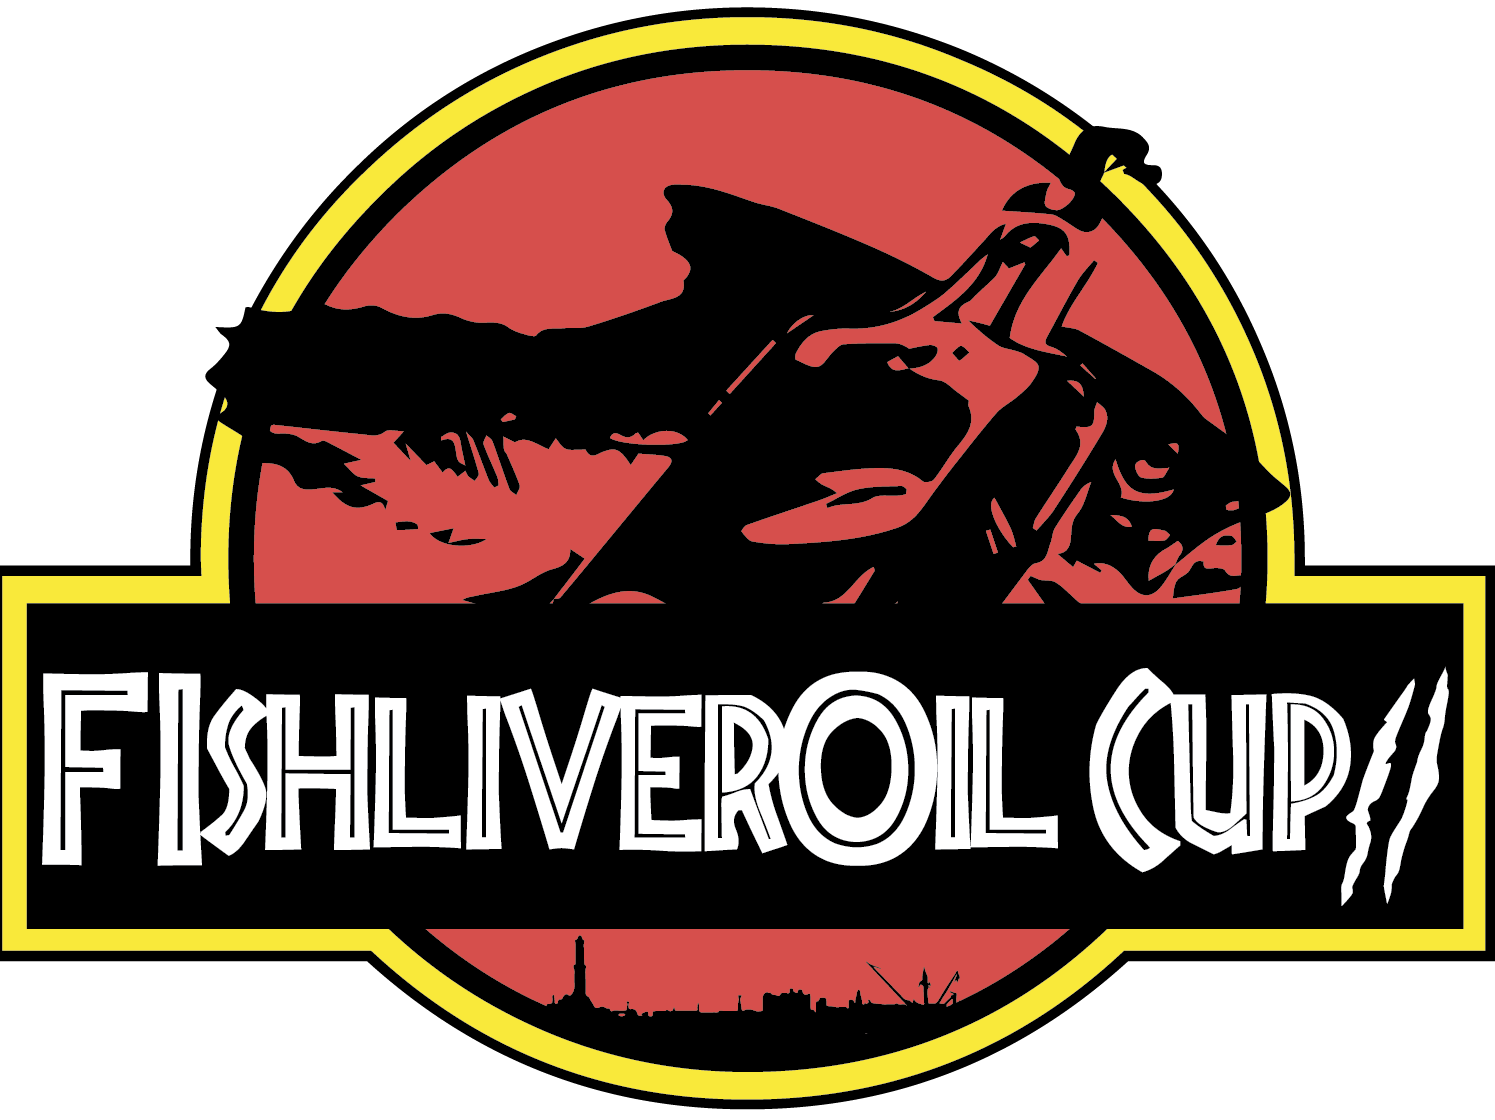 Fishliveroilcup stream